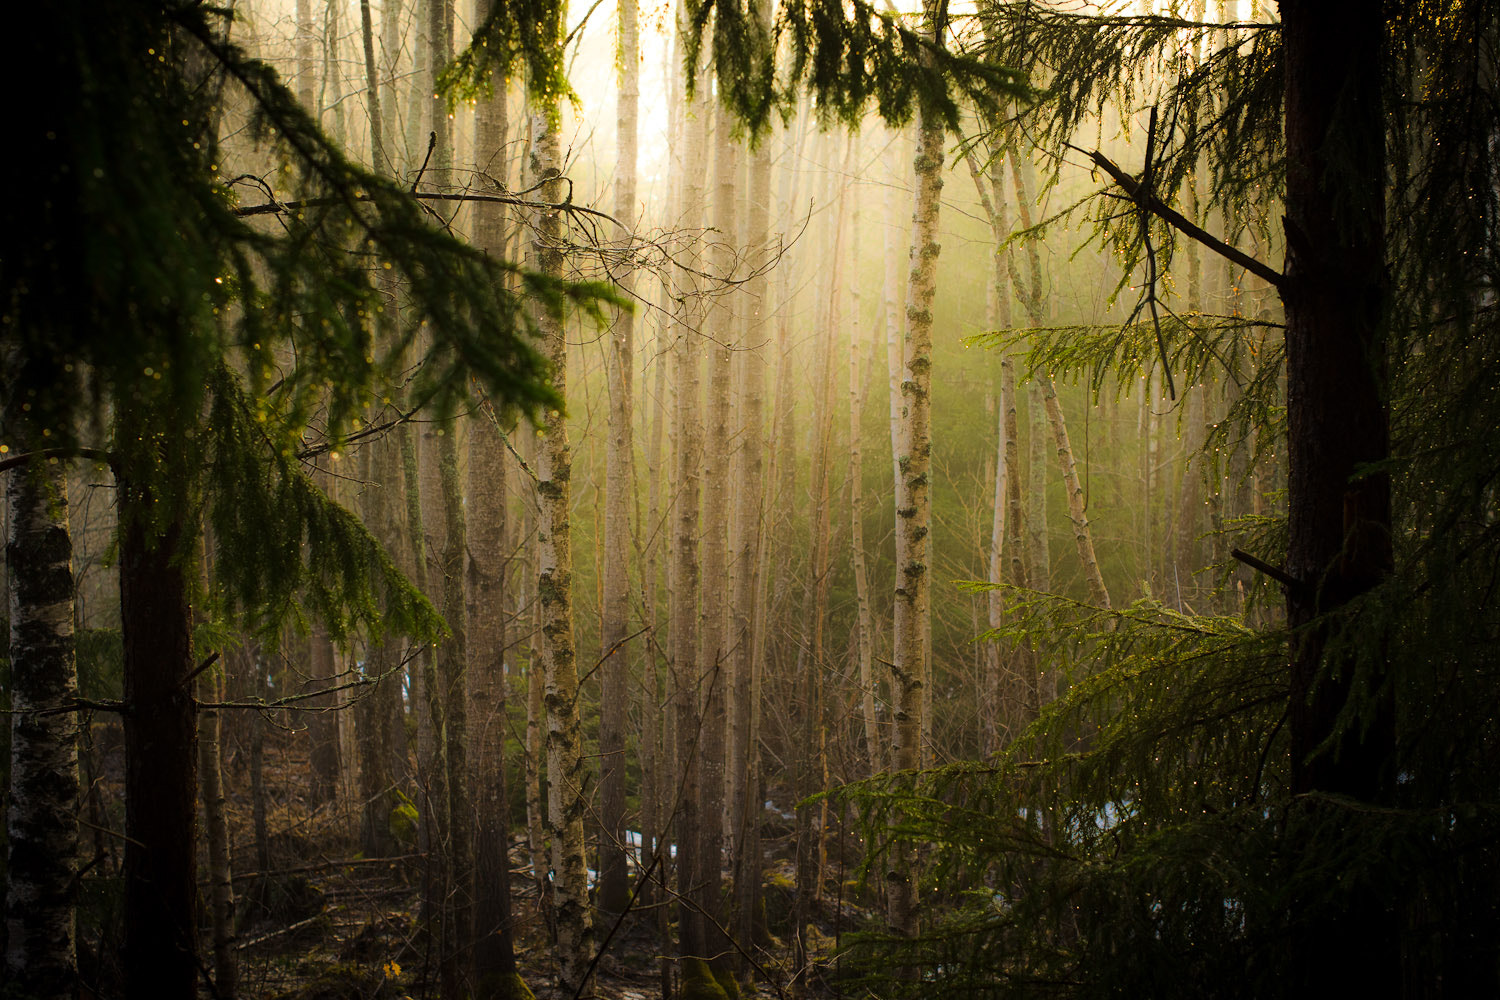 Photograph The woods by Ulf Bjolin on 500px